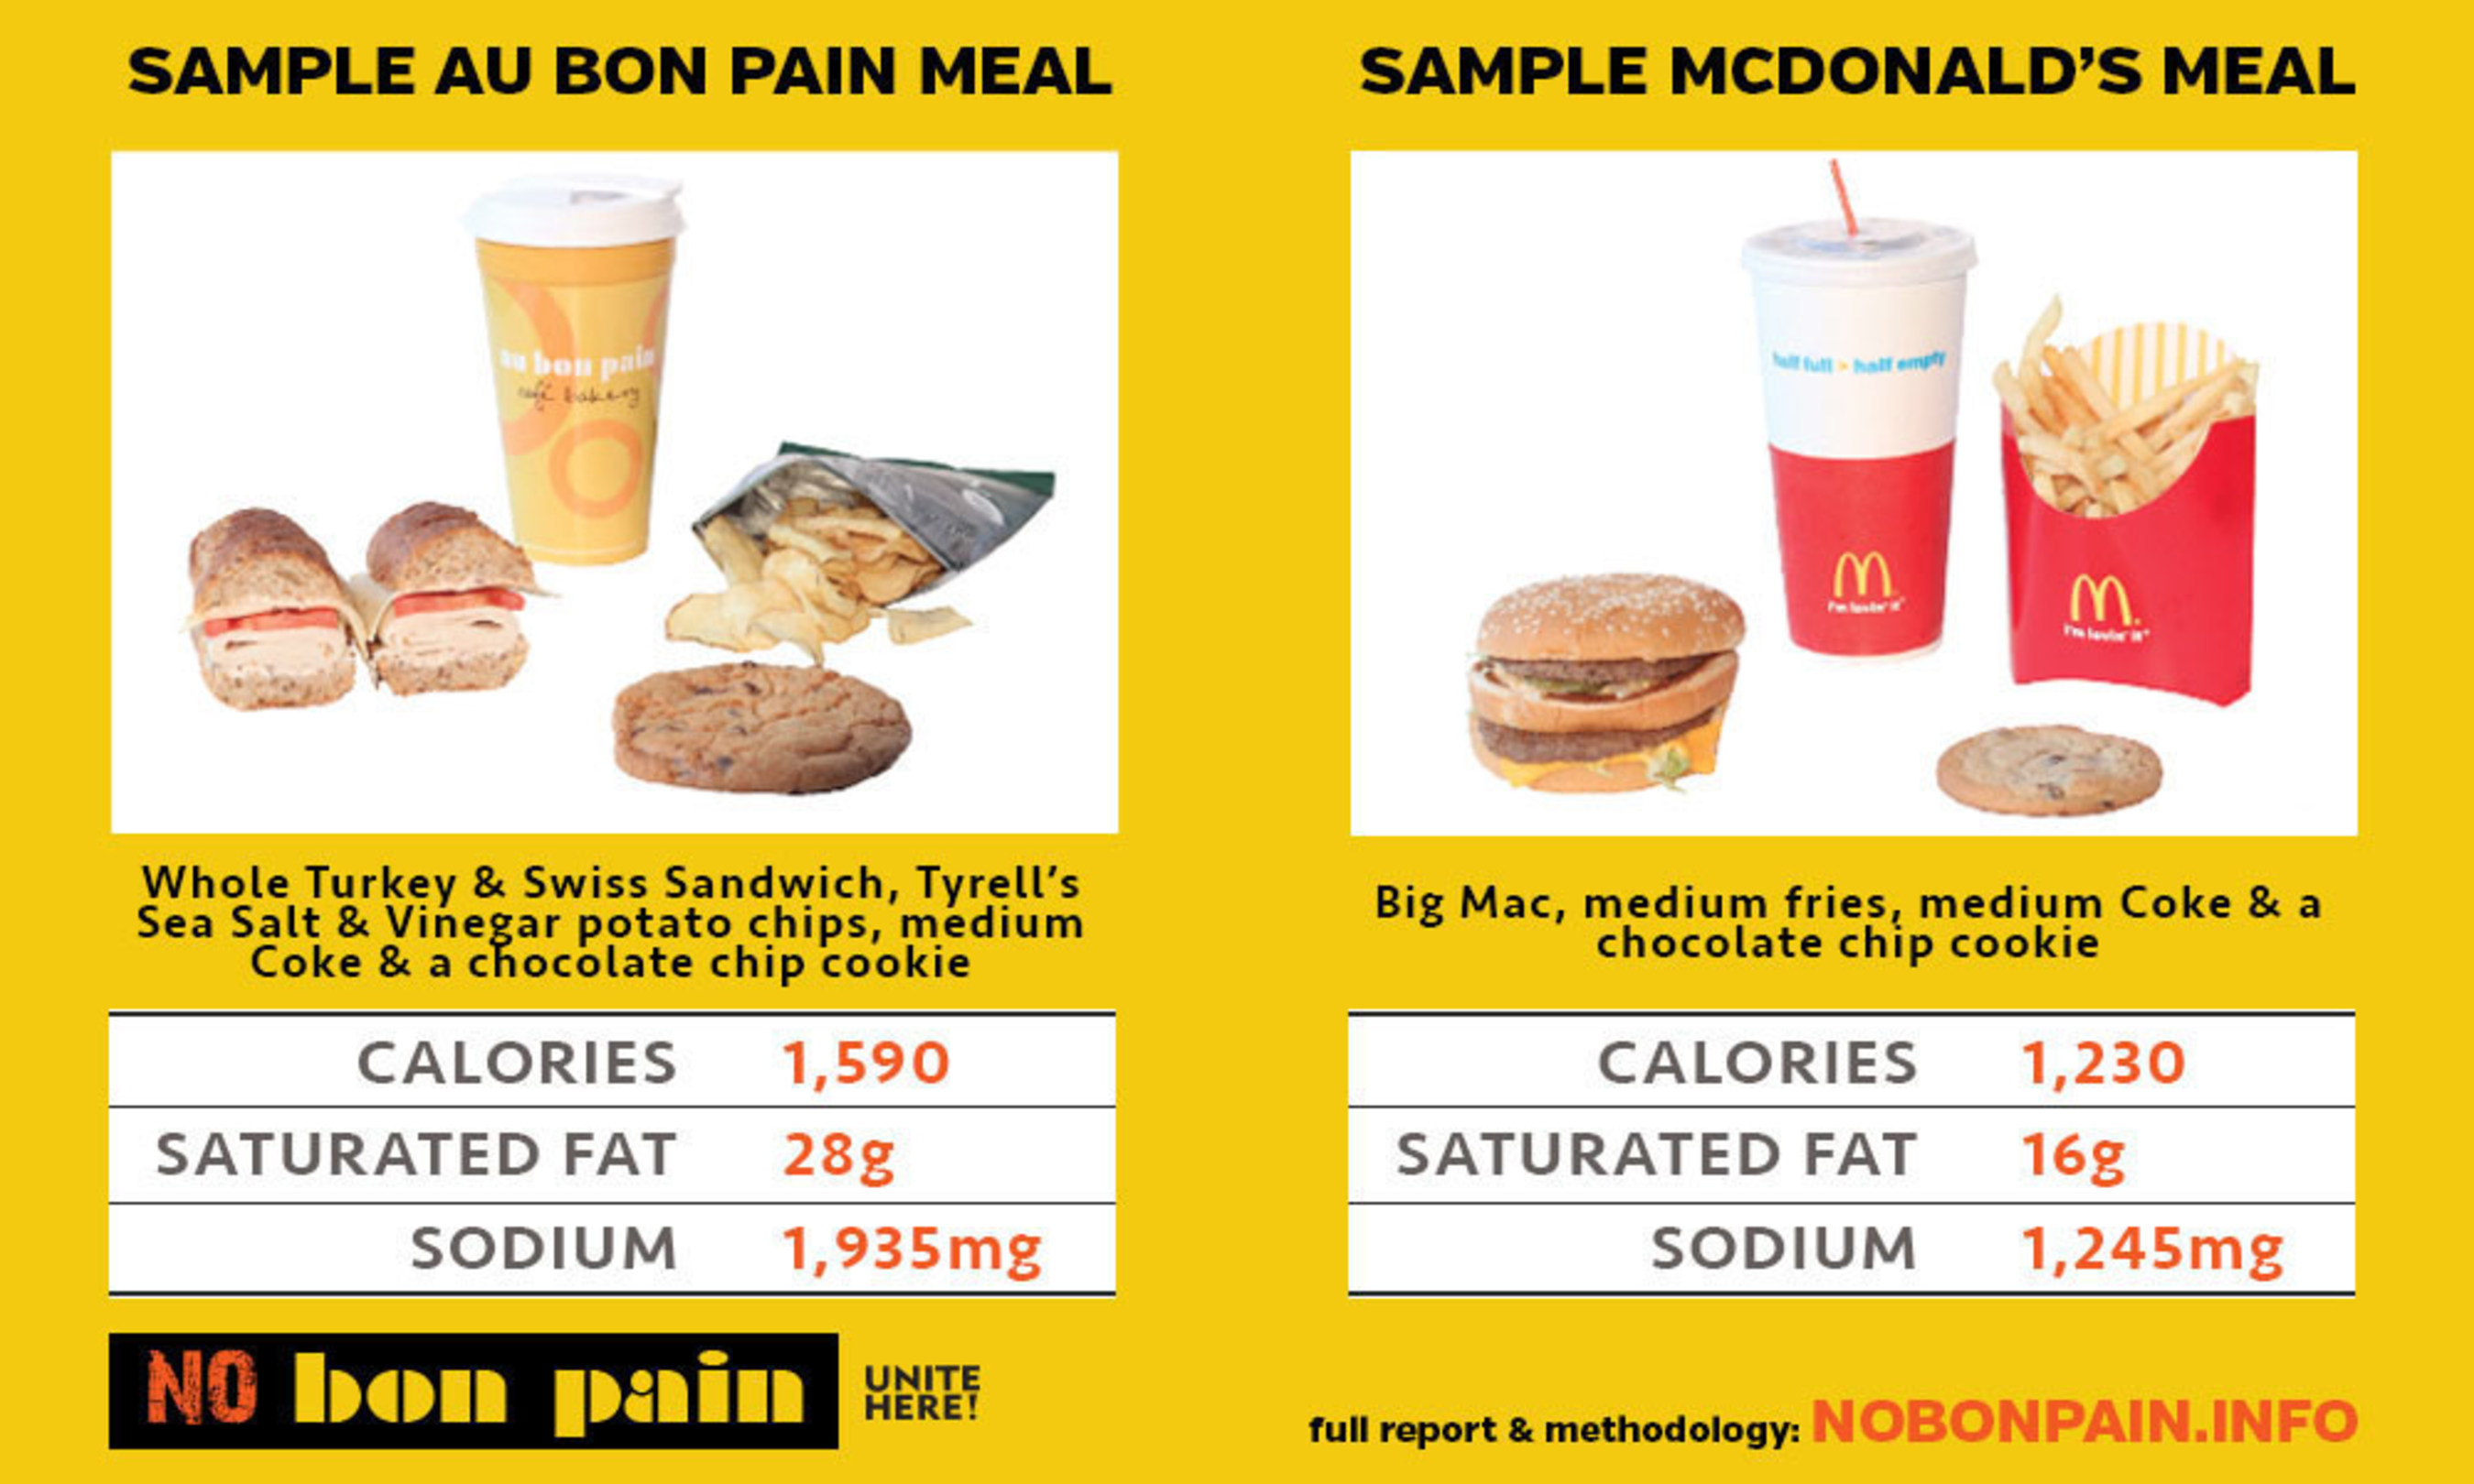 A sample Au Bon Pain meal of a Whole Turkey and Swiss Sandwich, Tyrol's Sea Salt and Vinegar potato chips, medium Coke and a chocolate chip cookie has more calories, saturated fat and sodium than a sample McDonald's meal of a Big Mac, medium fries, medium Coke and a chocolate chip cookie.